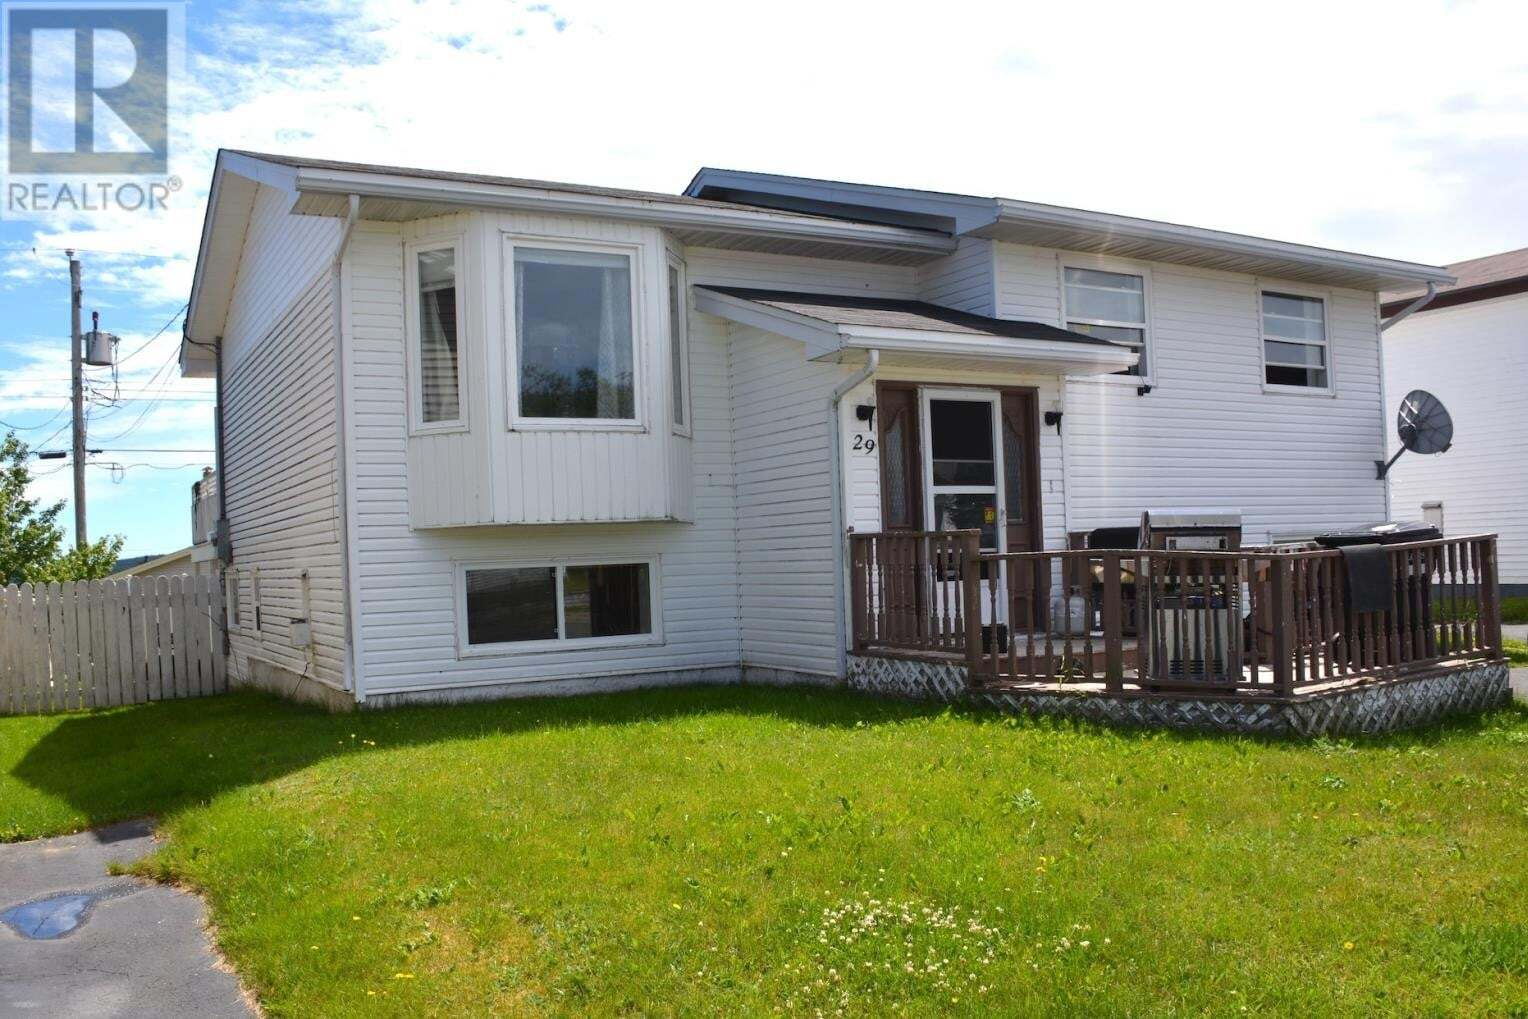 House for sale at 29 Bellevue Cres St. John's Newfoundland - MLS: 1218434